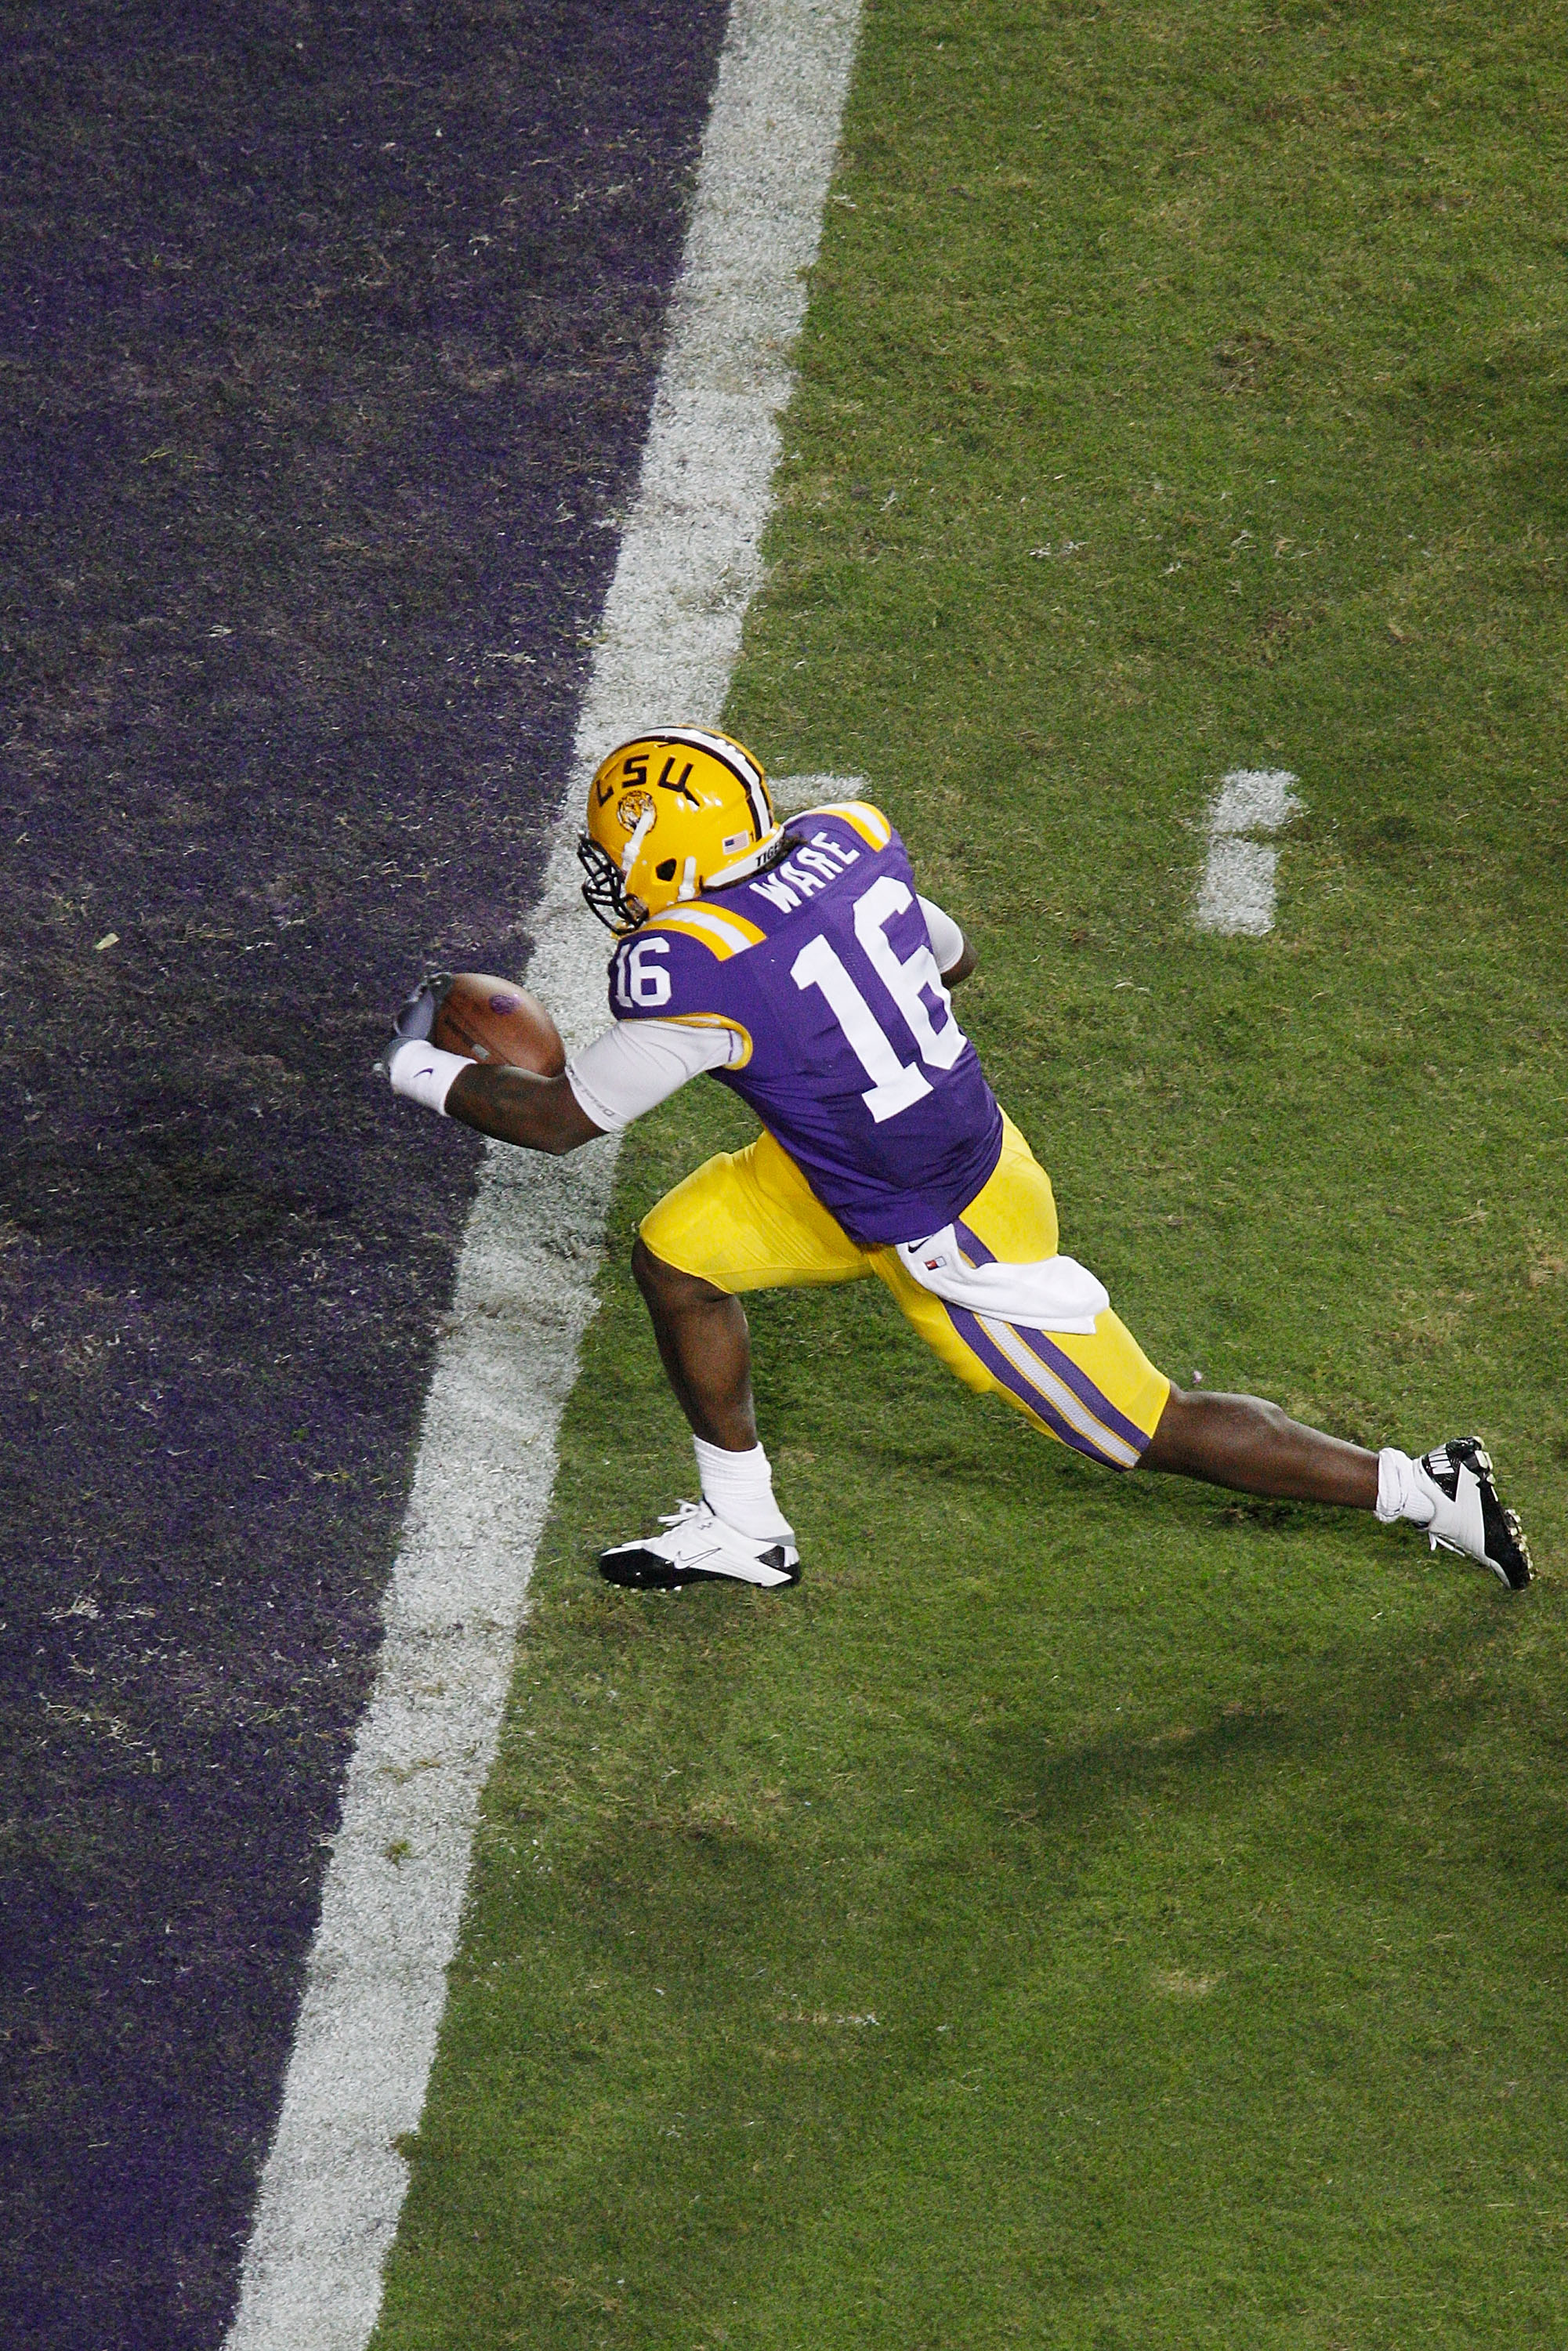 BATON ROUGE, LA - NOVEMBER 13:  Spencer Ware #16 of the Louisiana State University Tigers scores a touchdown during the game against the University of Louisiana-Monroe Warhawks at Tiger Stadium on November 13, 2010 in Baton Rouge, Louisiana. The Tigers de